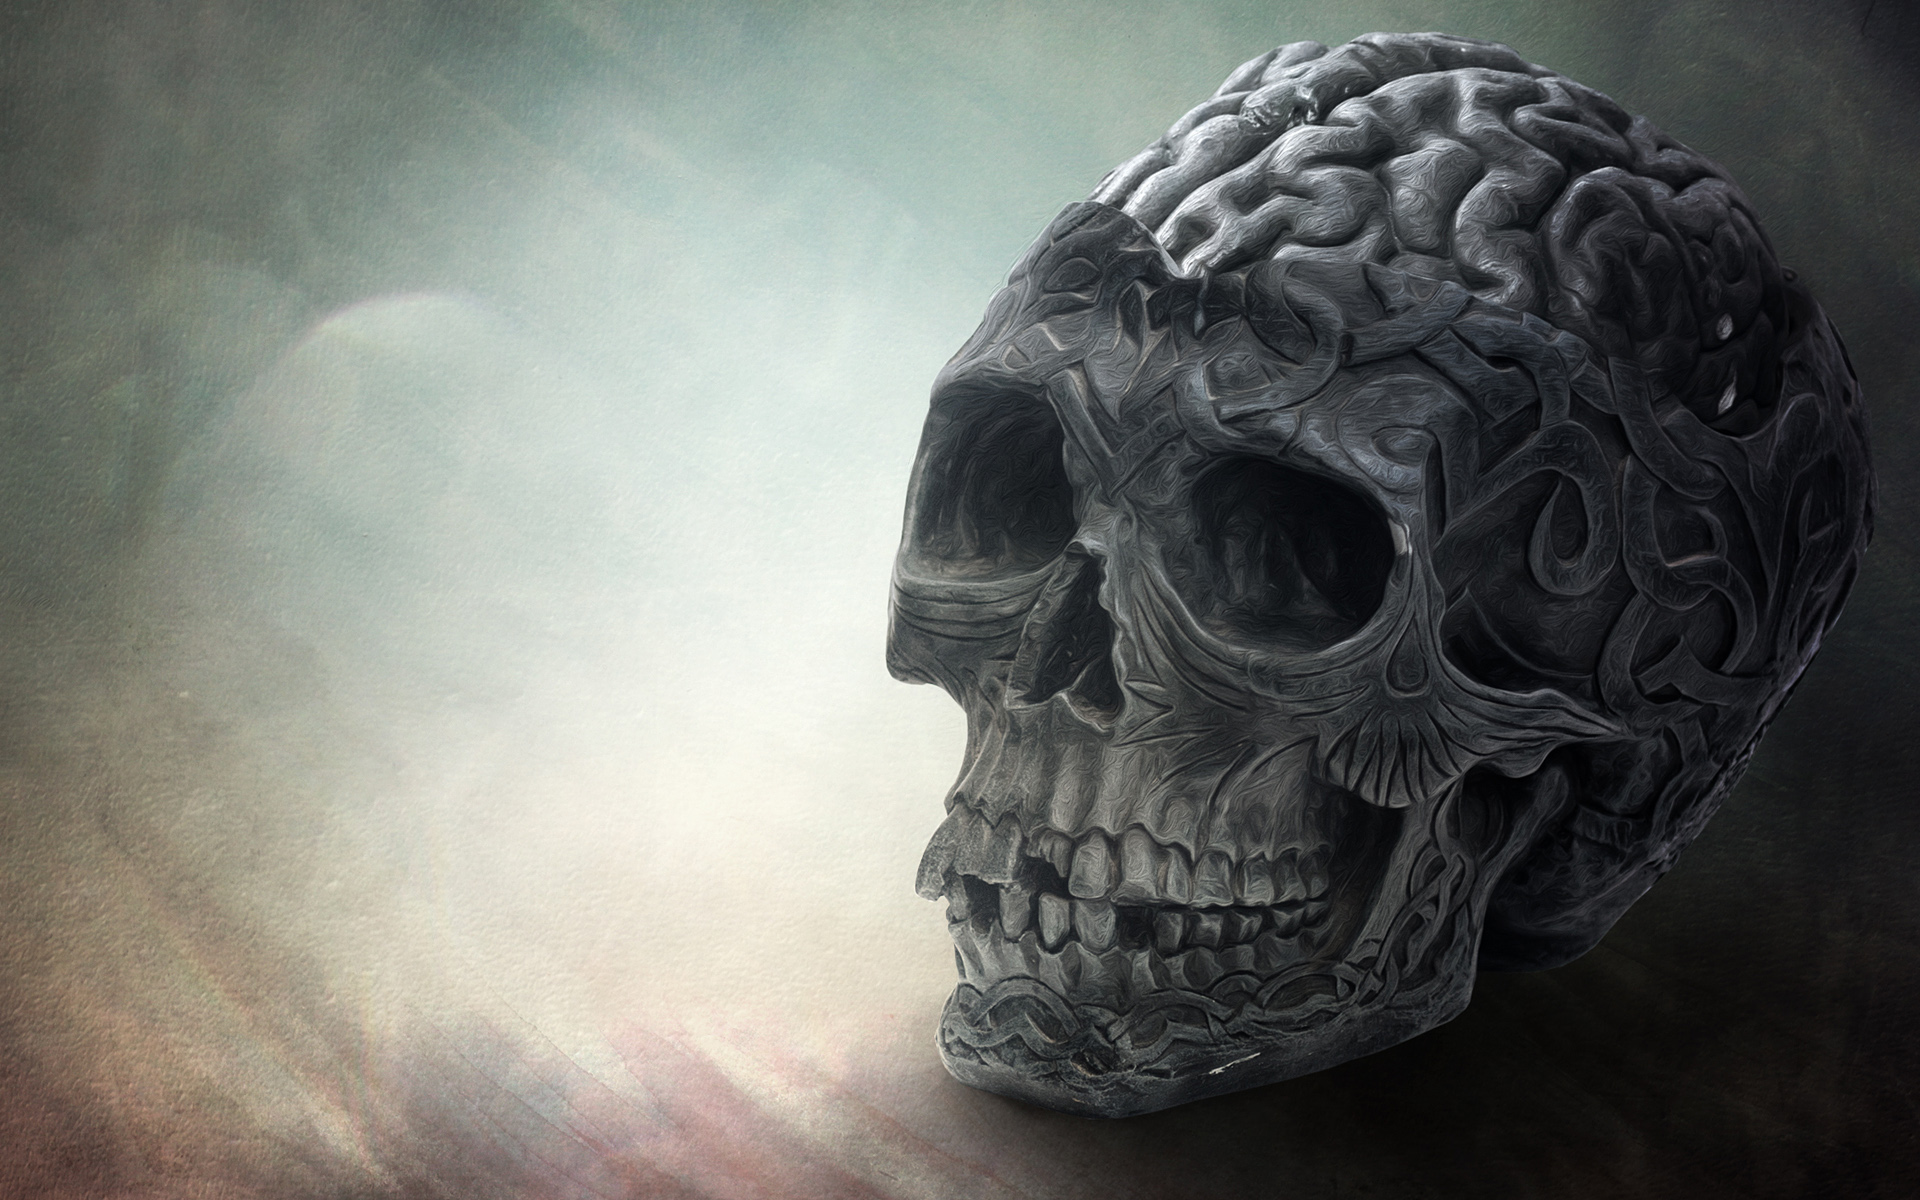 hd wallpapers download desktop download hd skull wallpapers 1920x1200